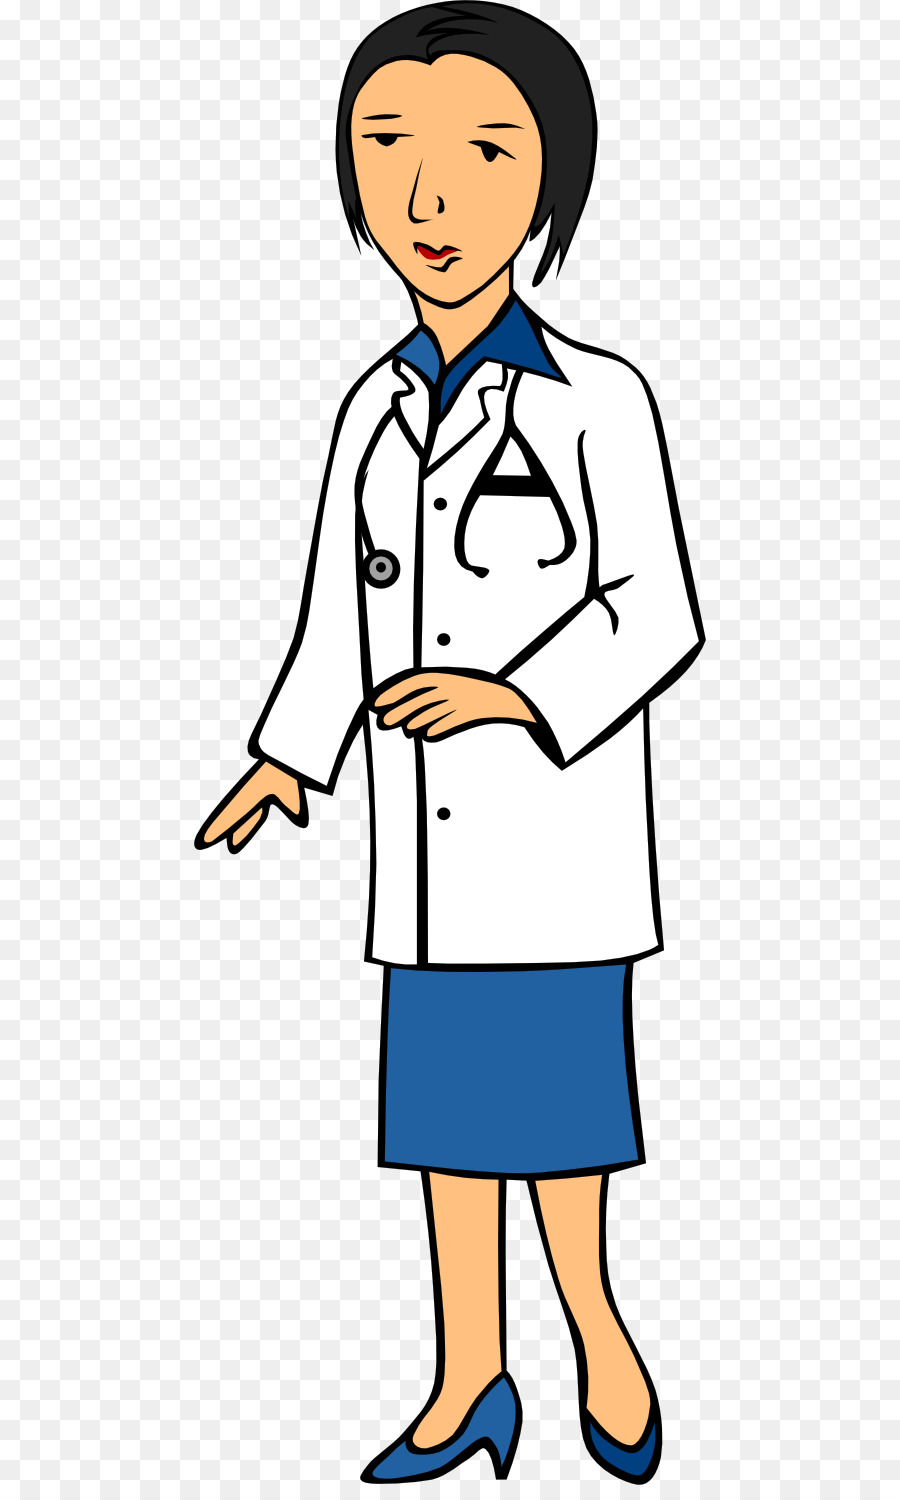 physician woman female clip art free doctor clipart png download rh kisspng com doctor clip art free download doctor clip art black and white